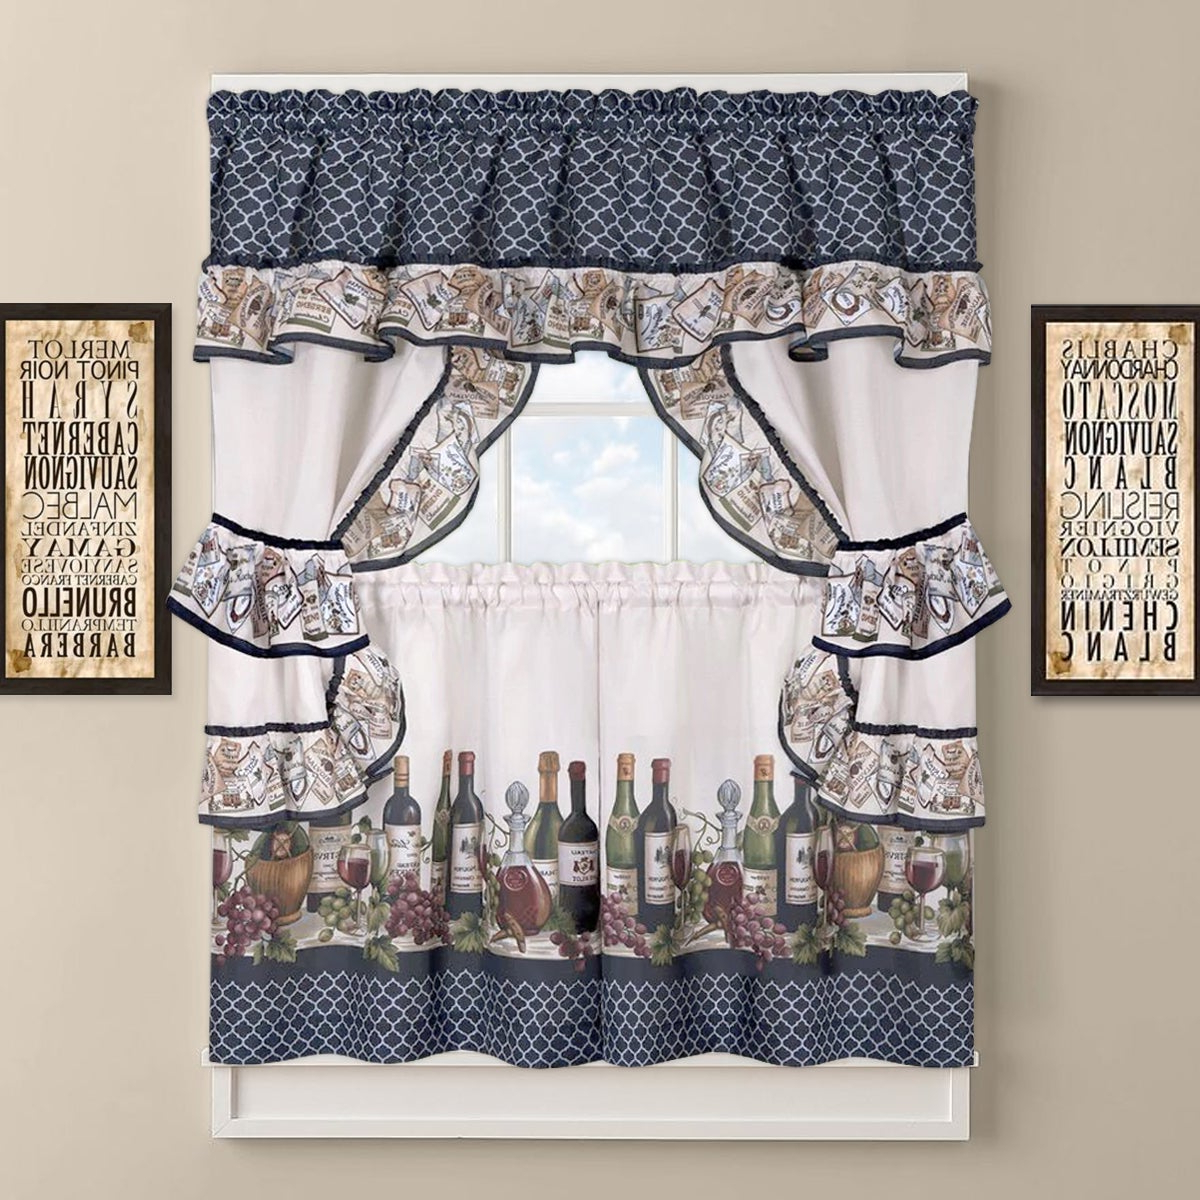 Urban Embroidered Tier And Valance Kitchen Curtain Tier Sets Intended For Most Recent Rollos, Gardinen & Vorhänge Urban Embroidered Grape Tier And (Gallery 9 of 20)